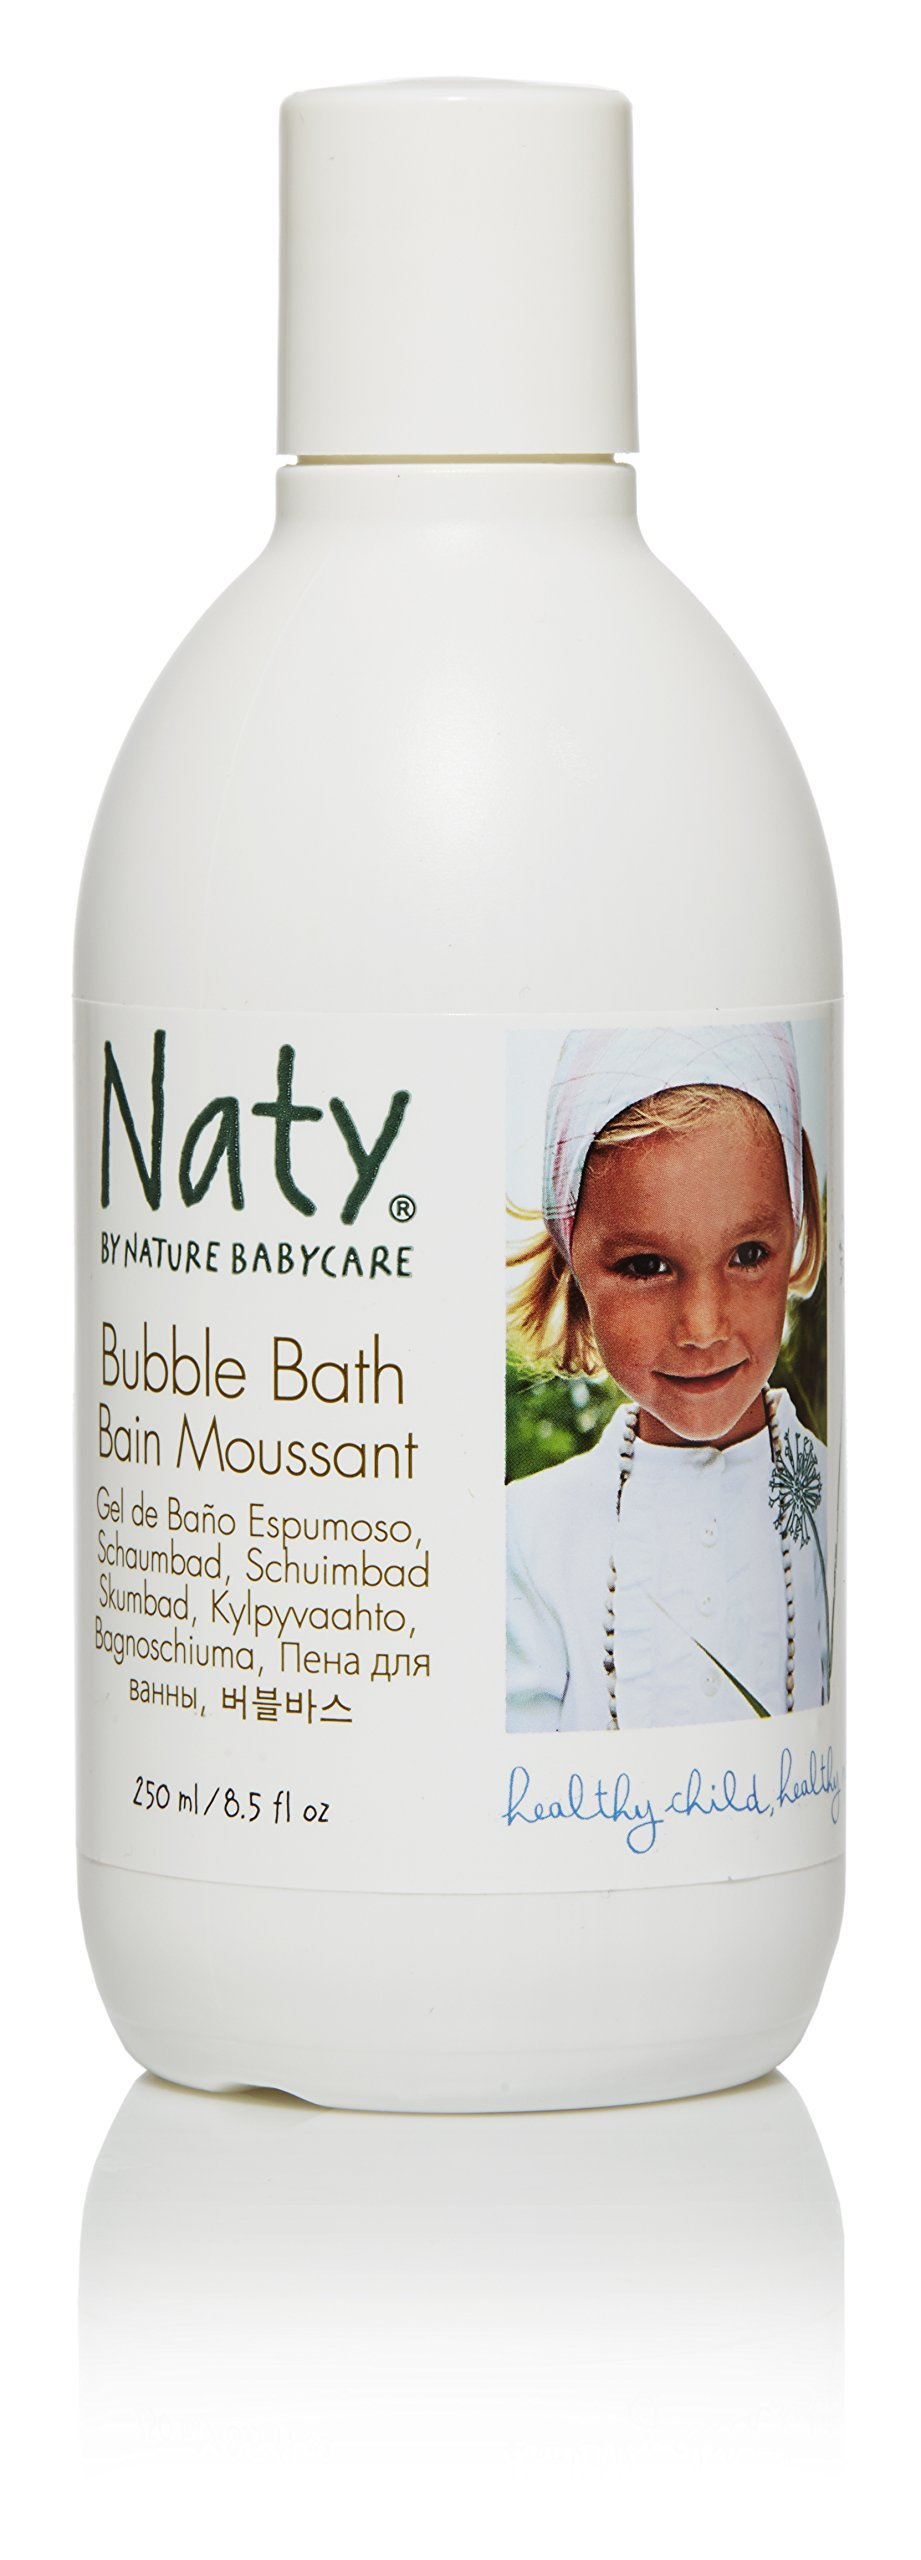 Naty Eco Bubble Bath, Perfume Free, 8.5-Ounce (Pack of 2) by Naty by Nature Babycare